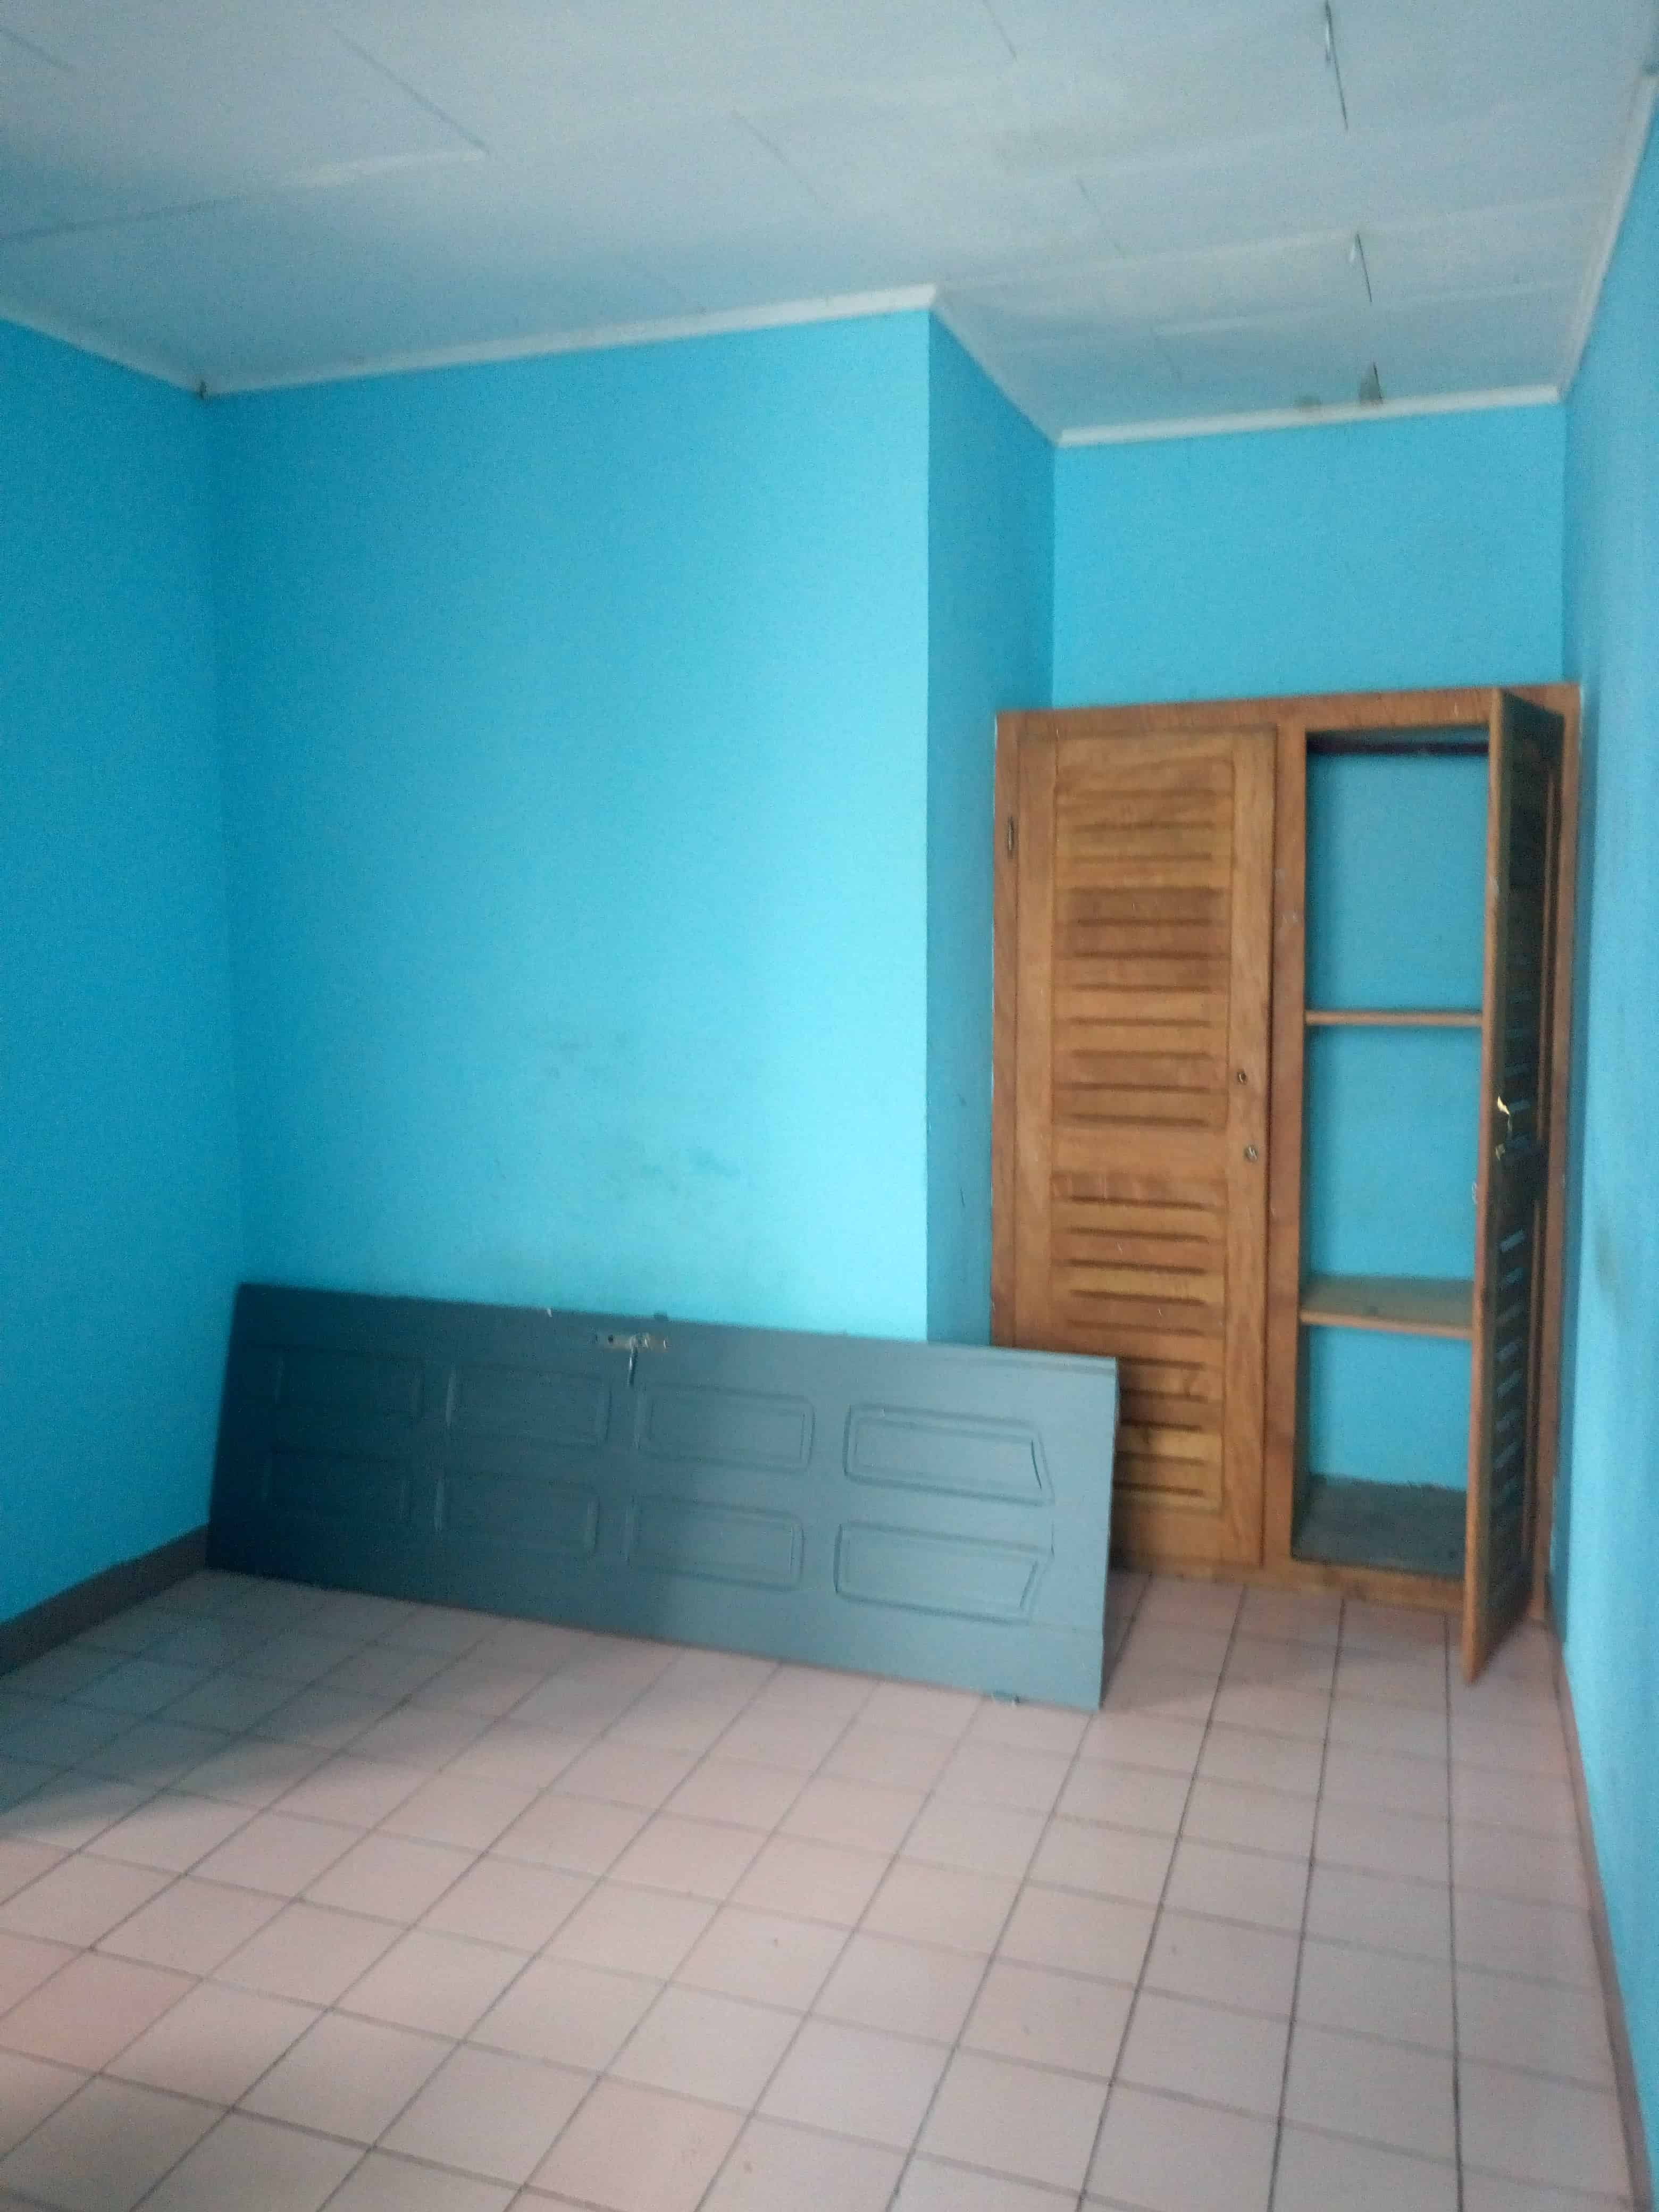 Apartment to rent - Douala, Makepe, Rond pauleng - 1 living room(s), 1 bedroom(s), 1 bathroom(s) - 60 000 FCFA / month